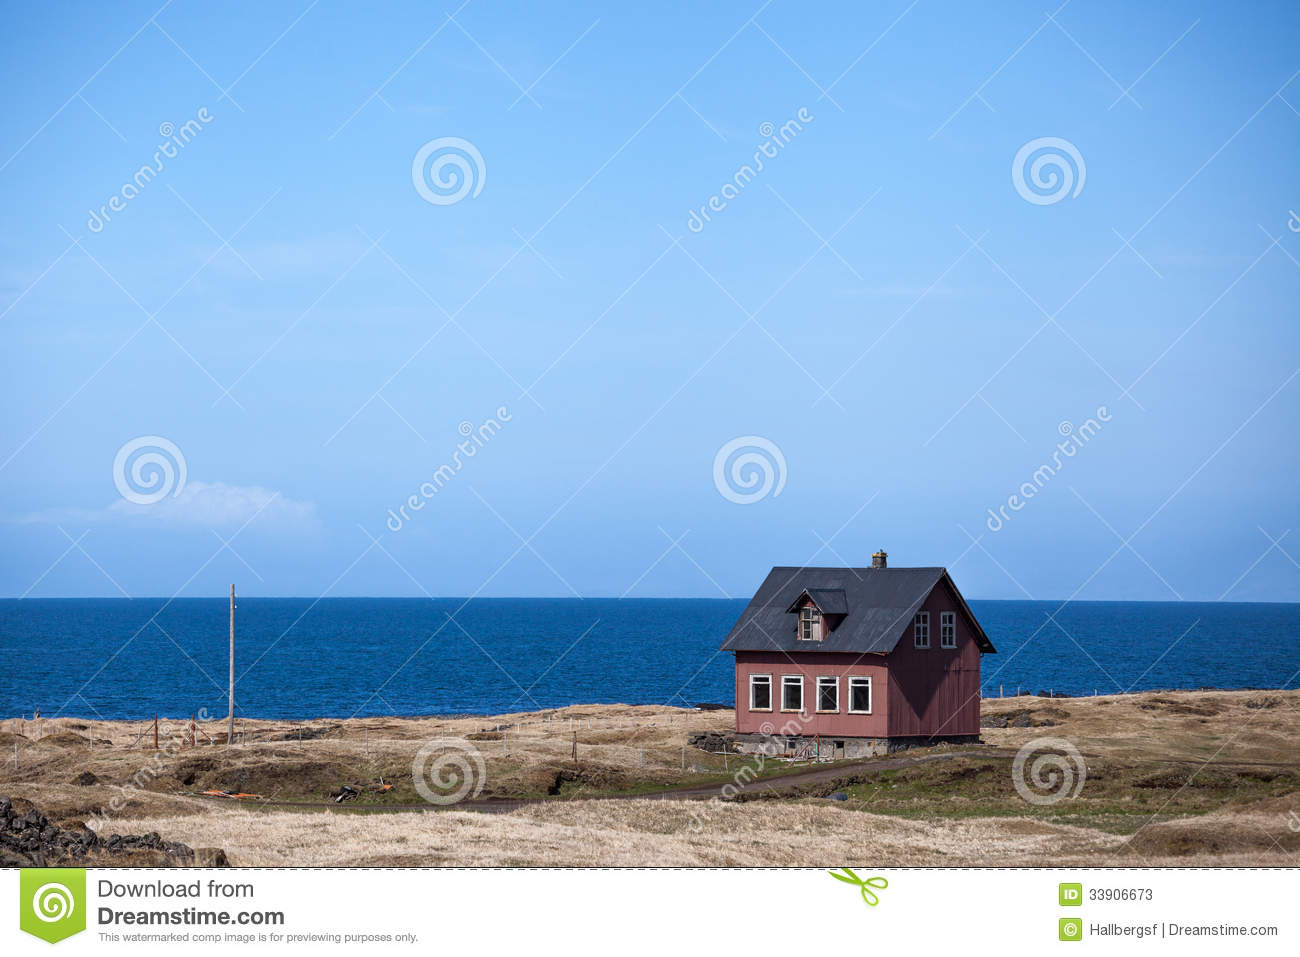 Iceland stock photos image 33906673 for Iceland lonely house